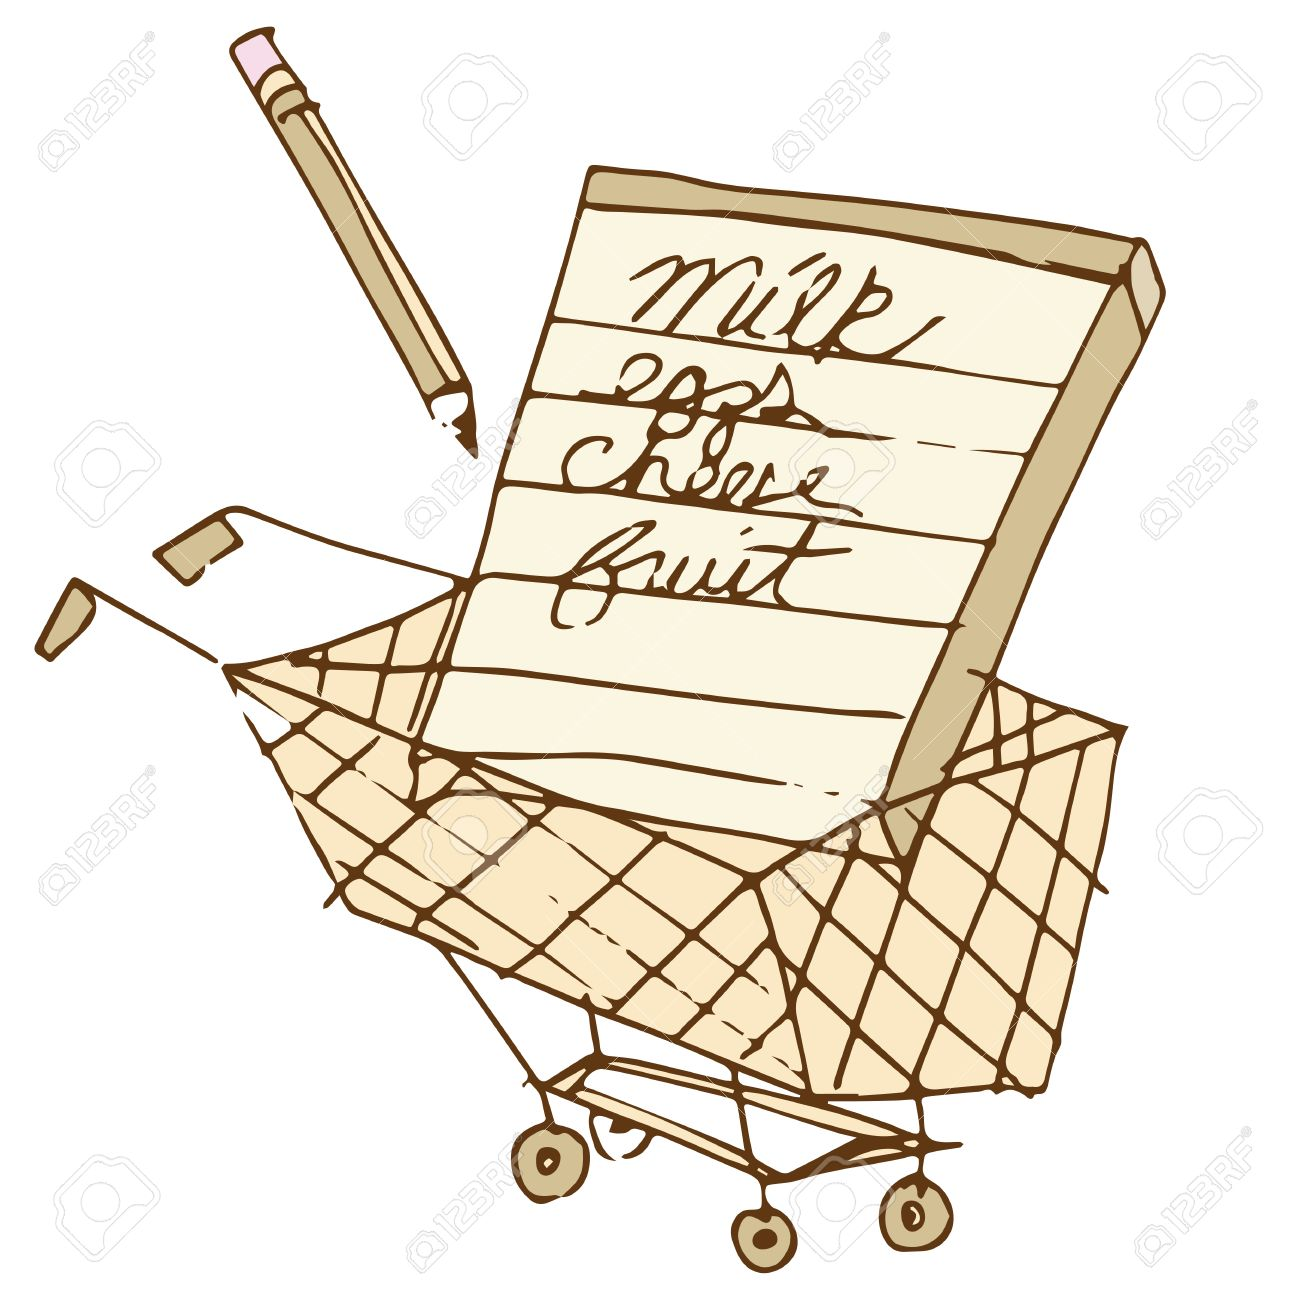 an image of a shopping list in a cart. royalty free cliparts